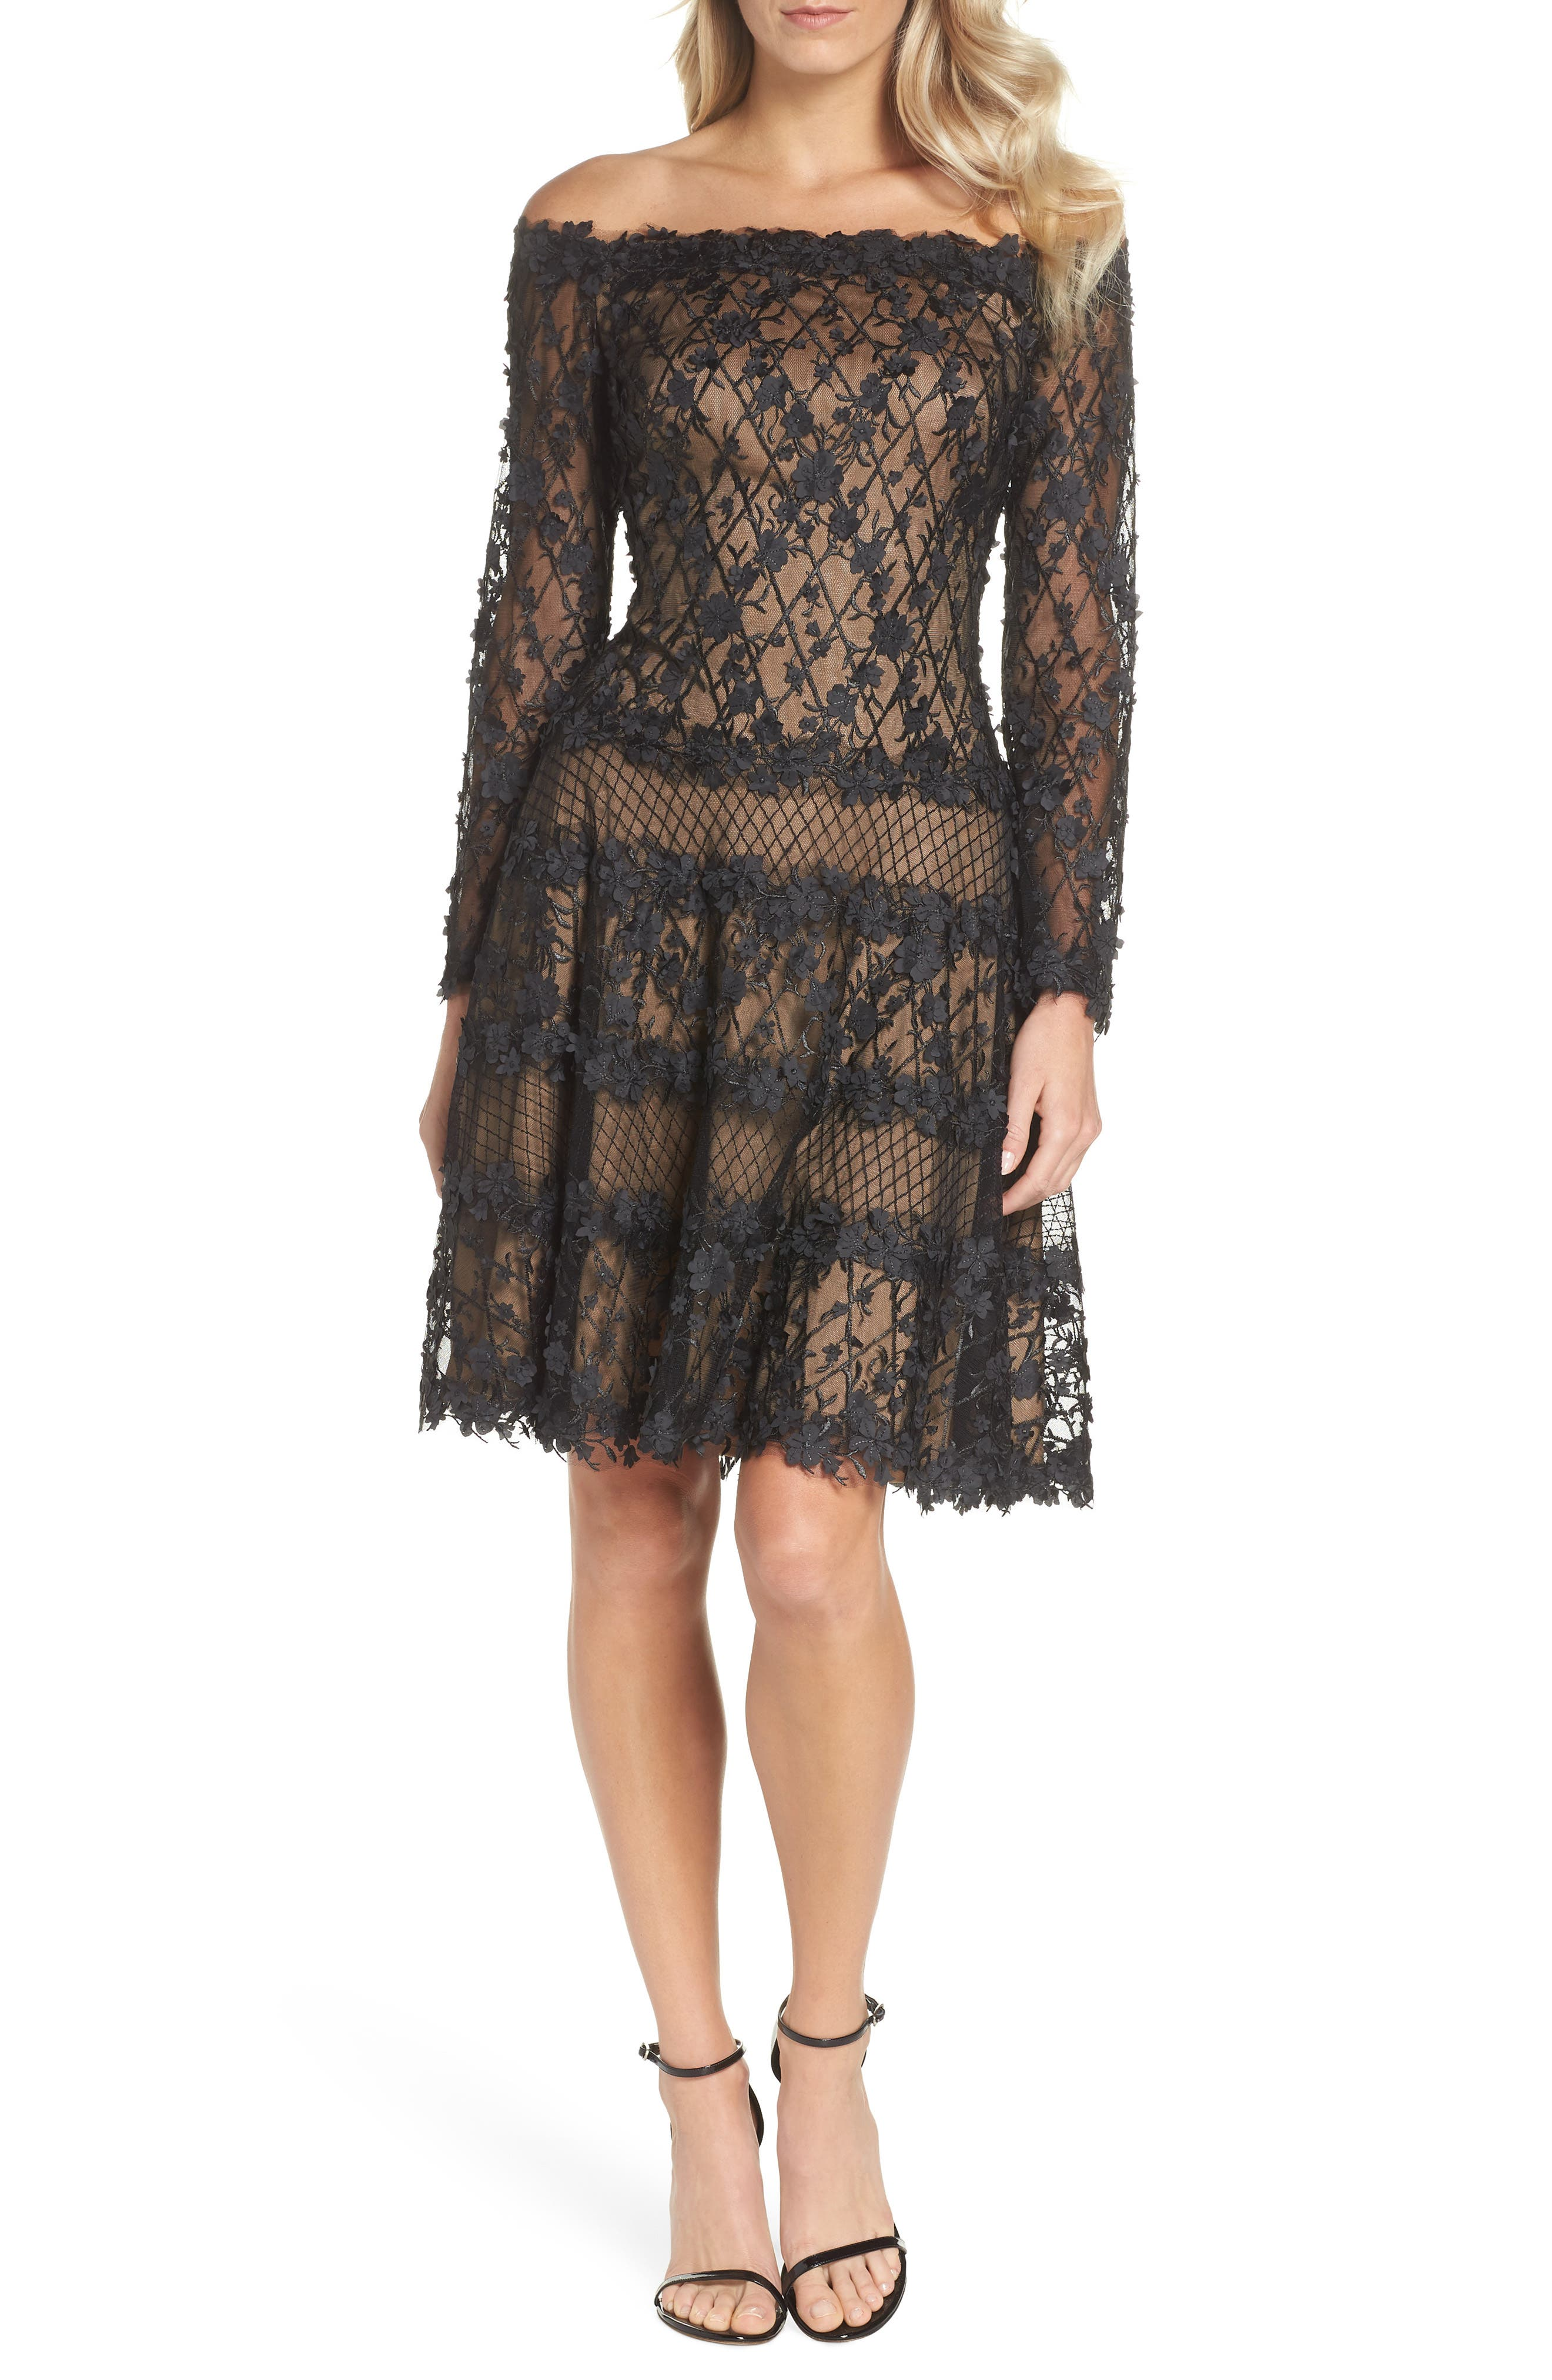 Tadashi Shoji Flower Off The Shoulder Dress Black